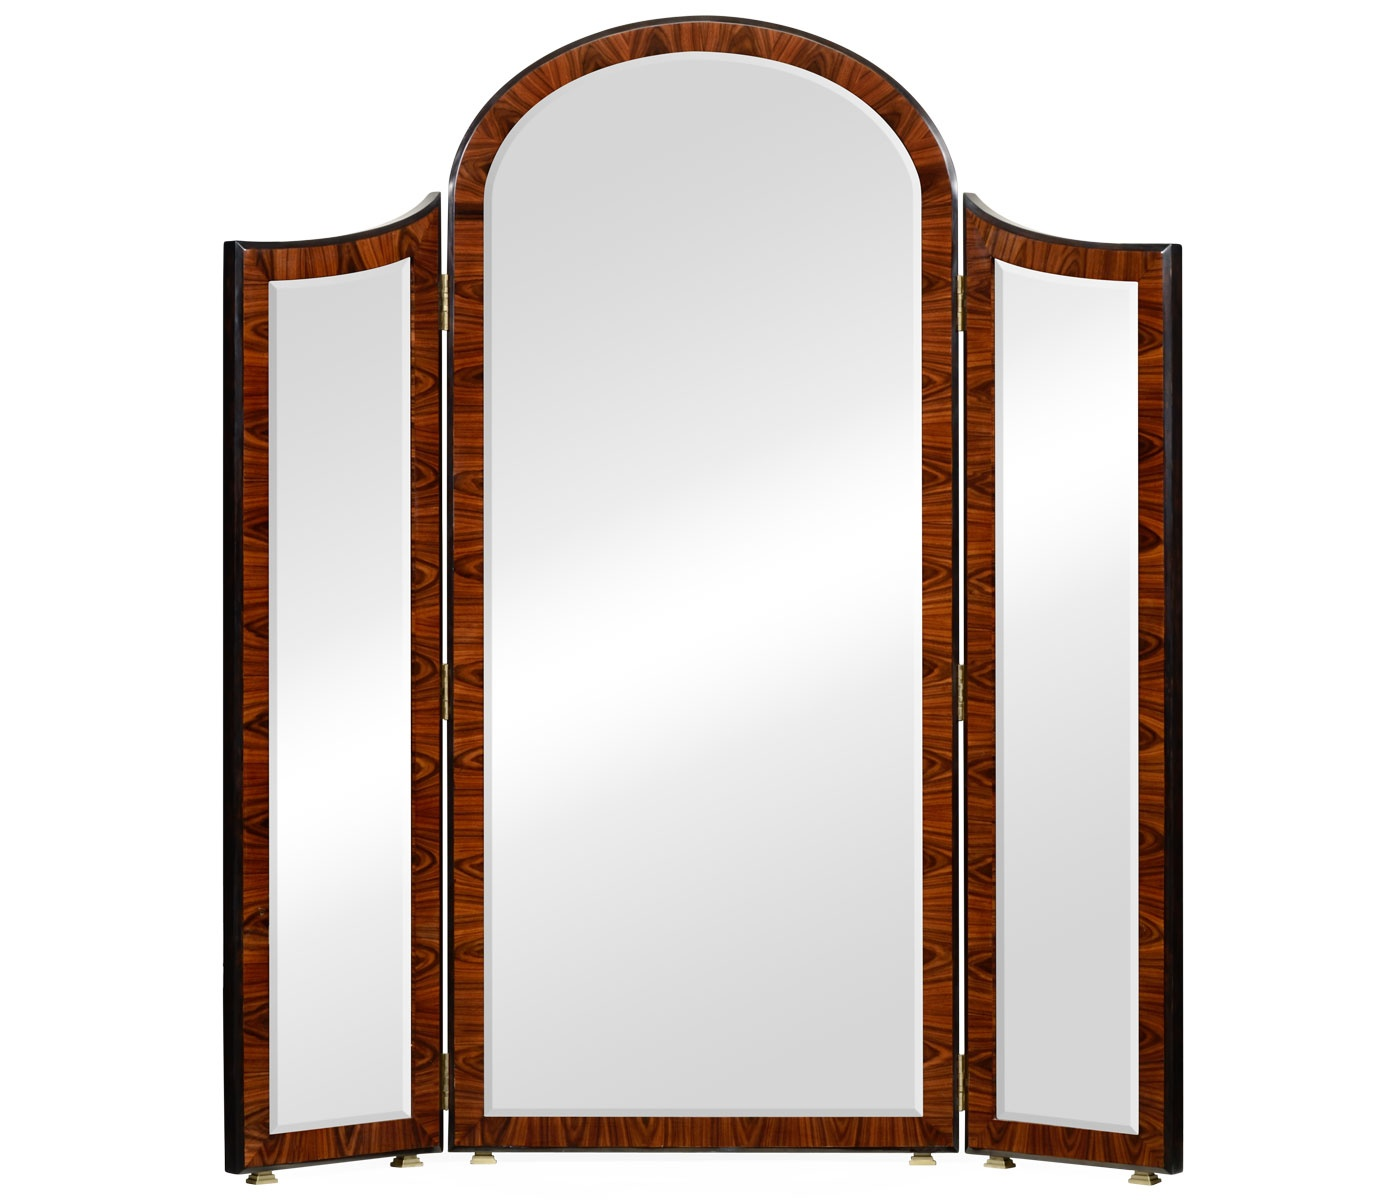 art deco era furniture. Jonathan Charles Furniture Art Deco Style Full Length Triple Dressing Mirror, High Lustre Era